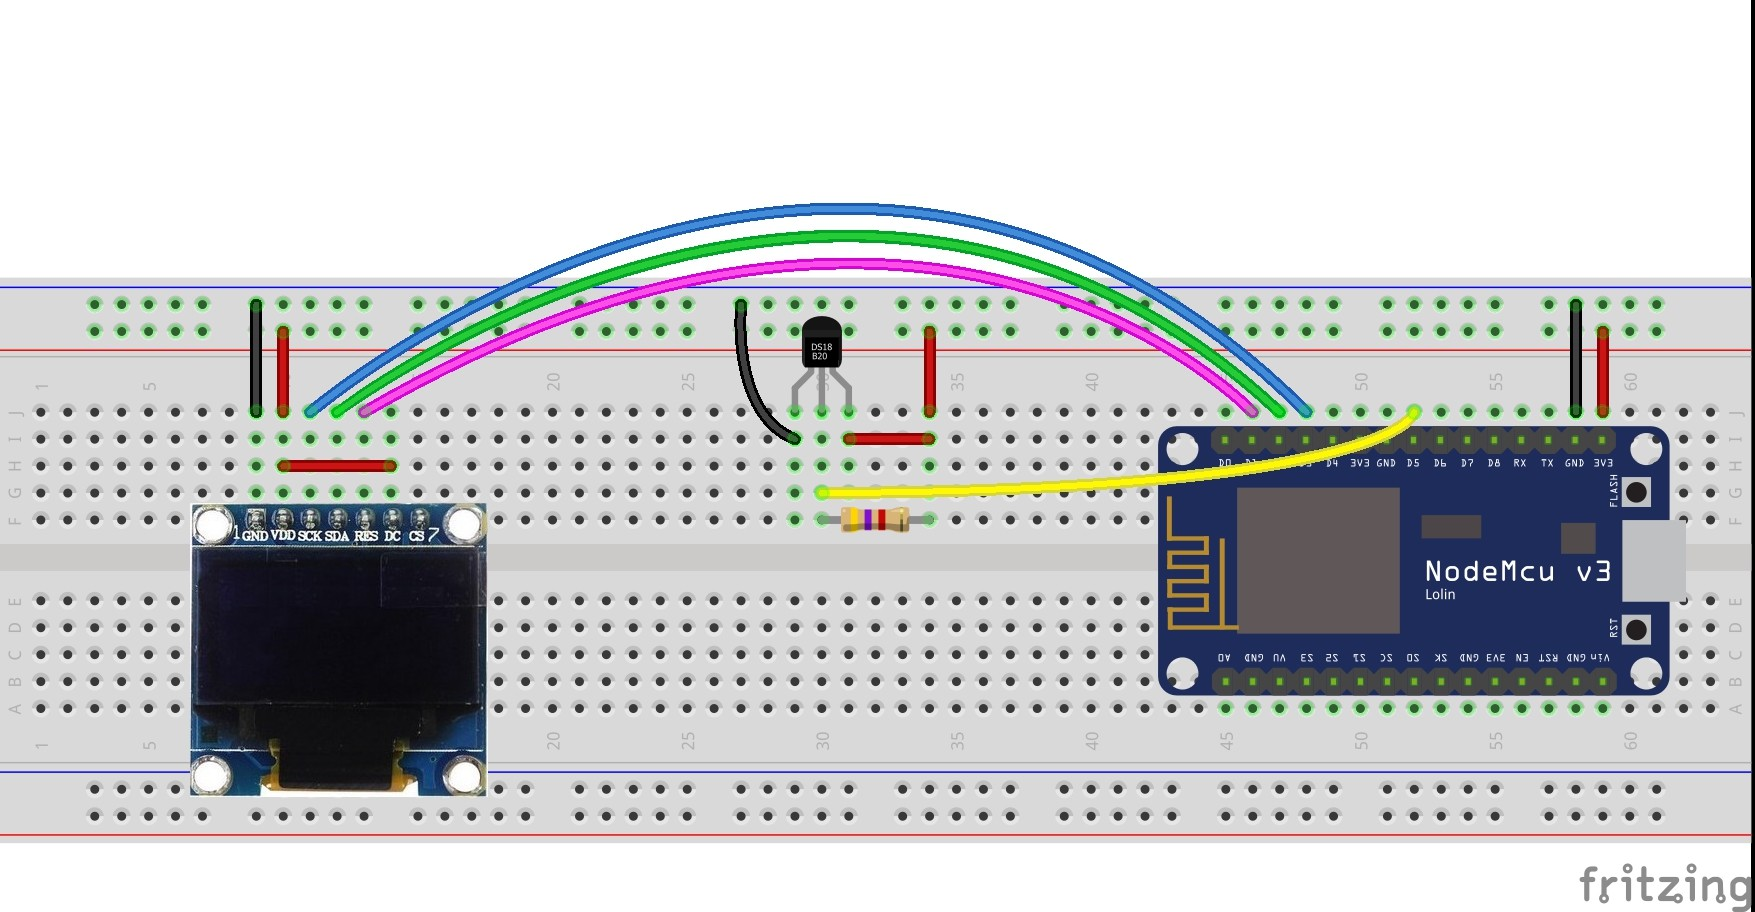 NodeMCU Interfacing with SSD1306 and DS18B20 temperature